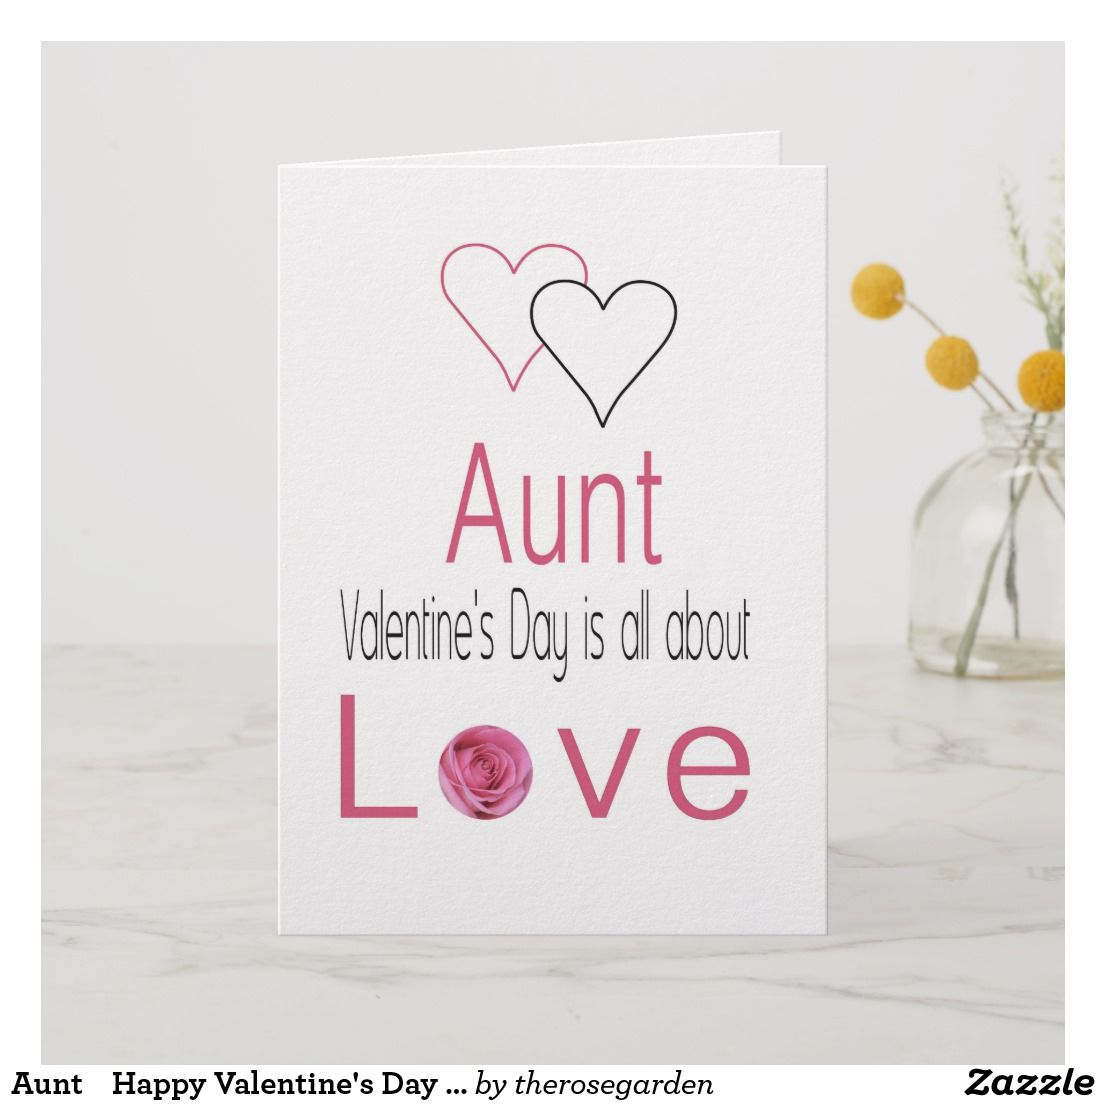 Aunt Happy Valentines Day Roses Holiday Card Zazzlecom N